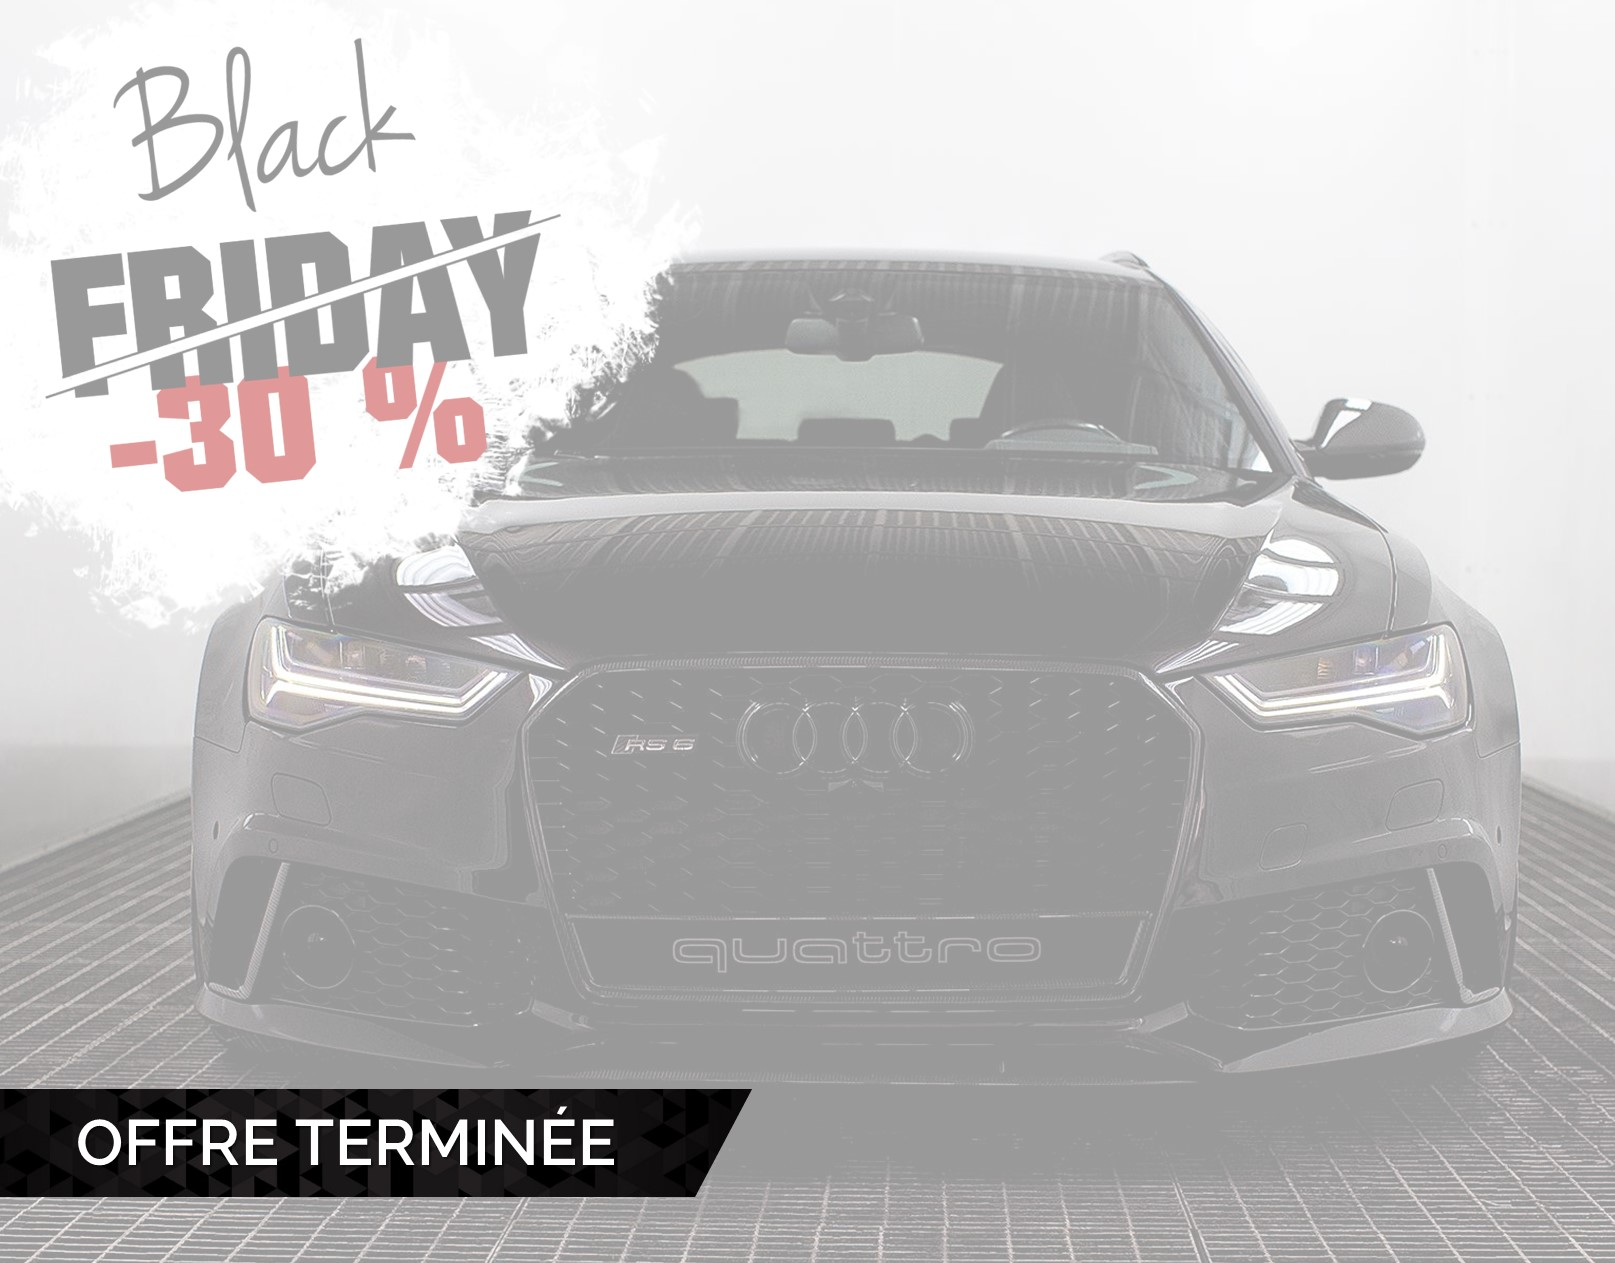 BLACK Friday ADP Performance remise exceptionnelle promotions -30% reprogrammation moteur stage 1